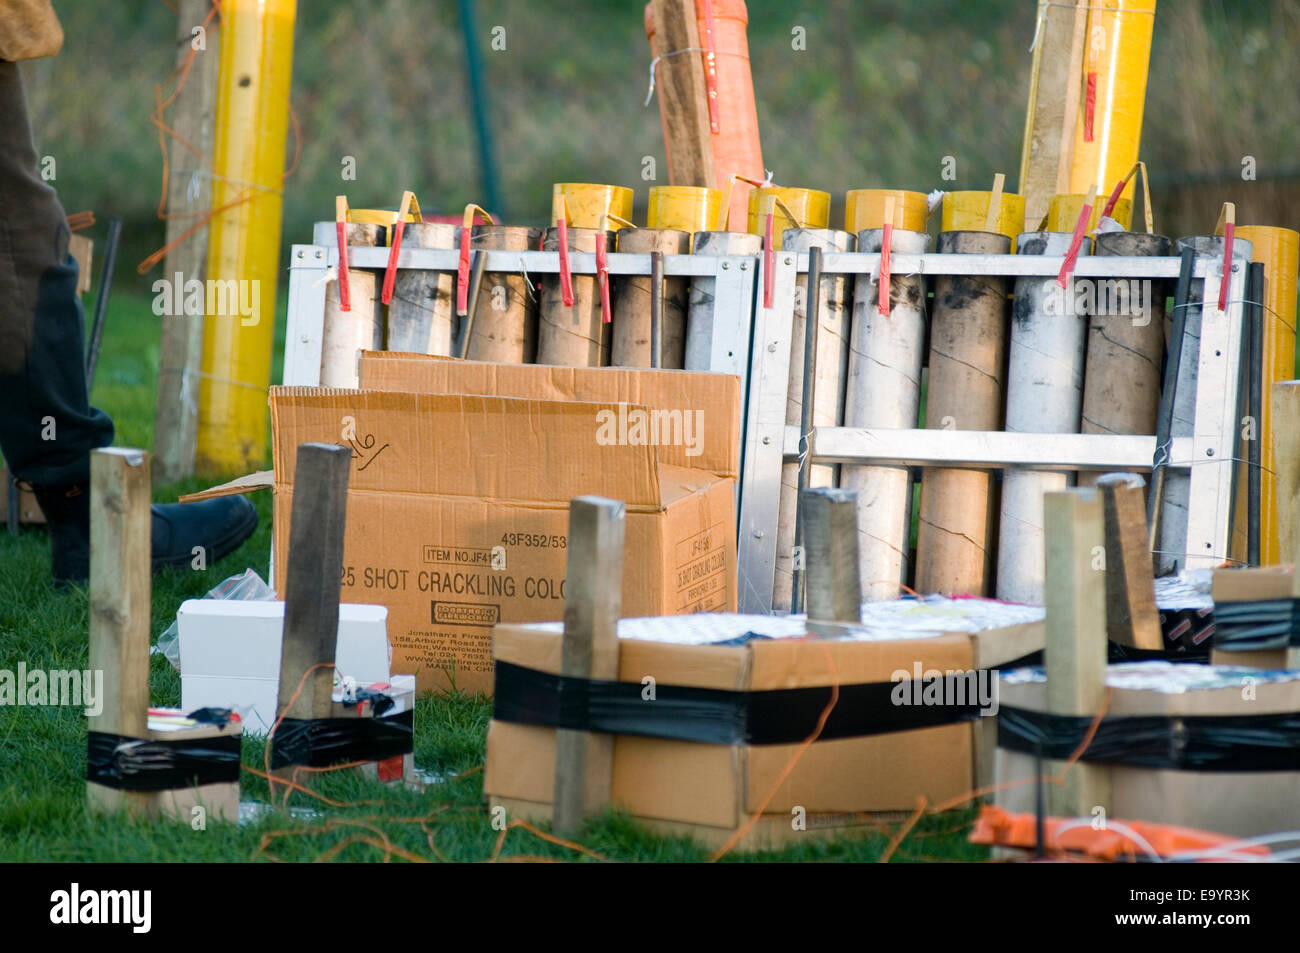 organized organised firework display fireworks displays fire work works professional rockets rocket mortar mortars - Stock Image